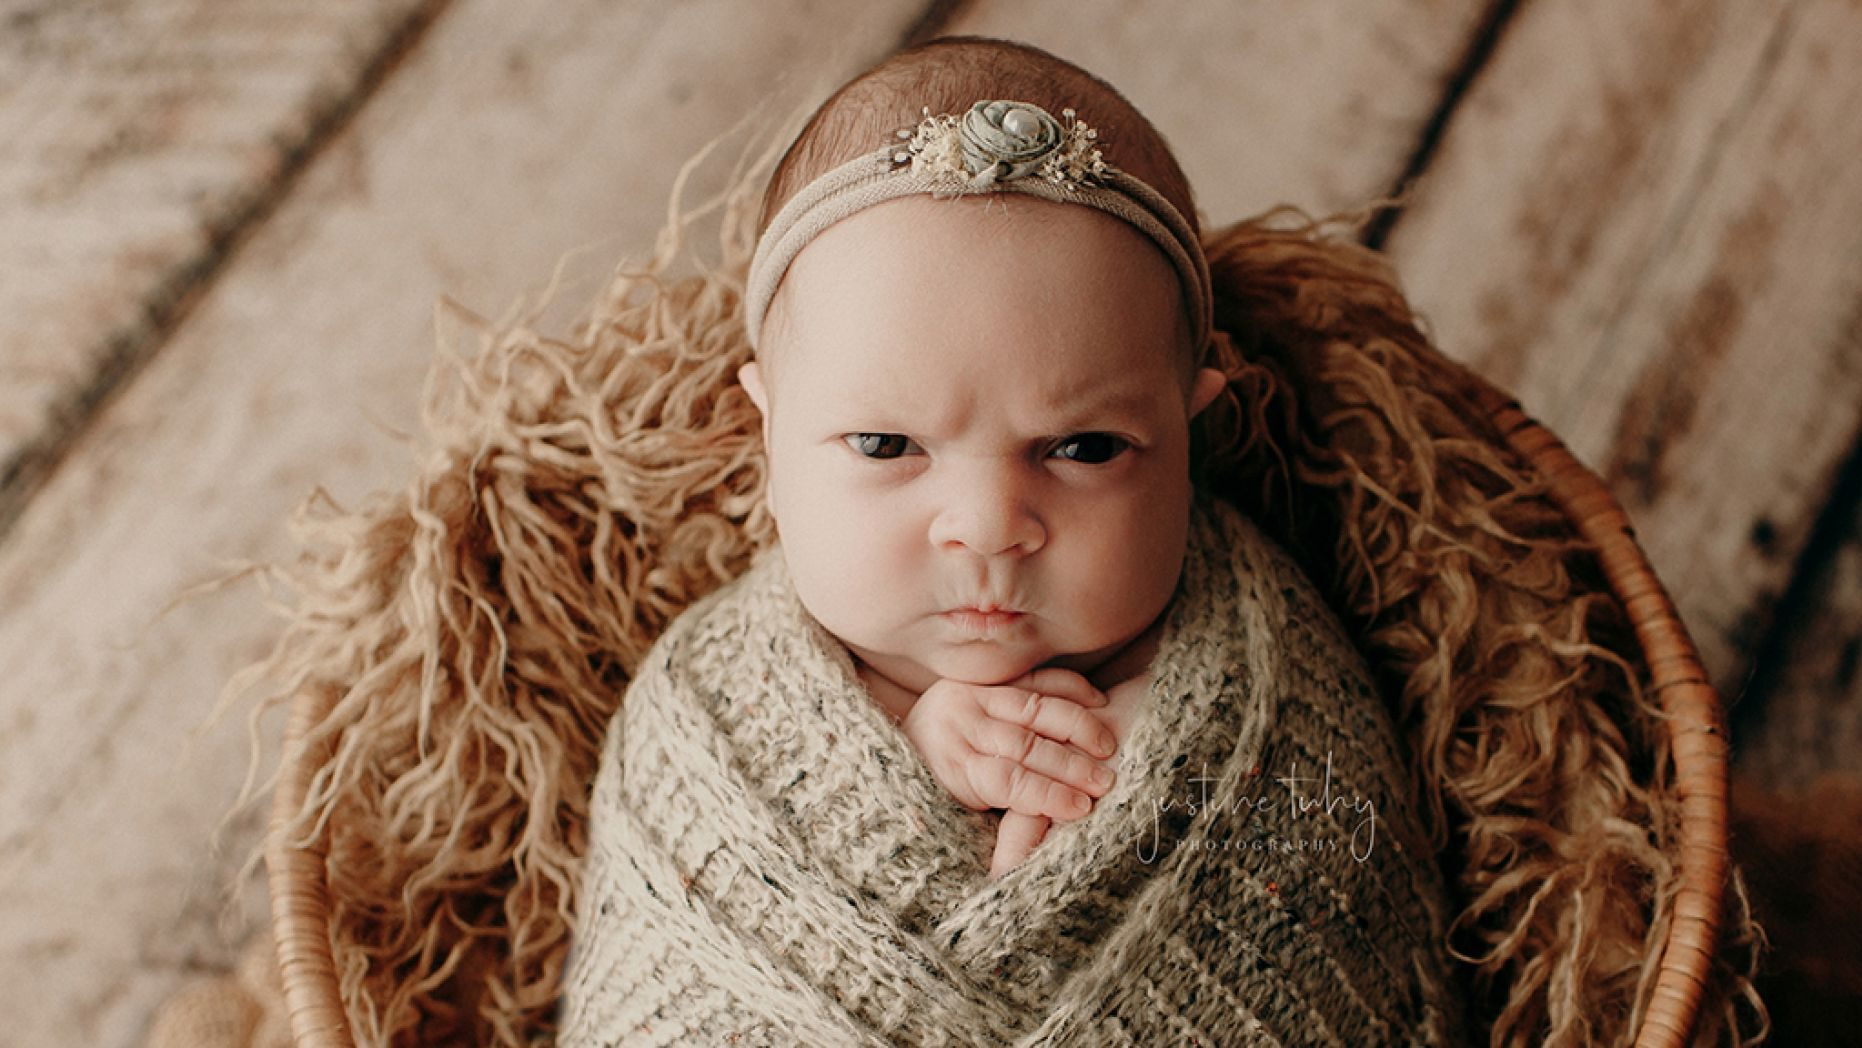 Grumpy Baby's Mean Mug Has Gone Viral